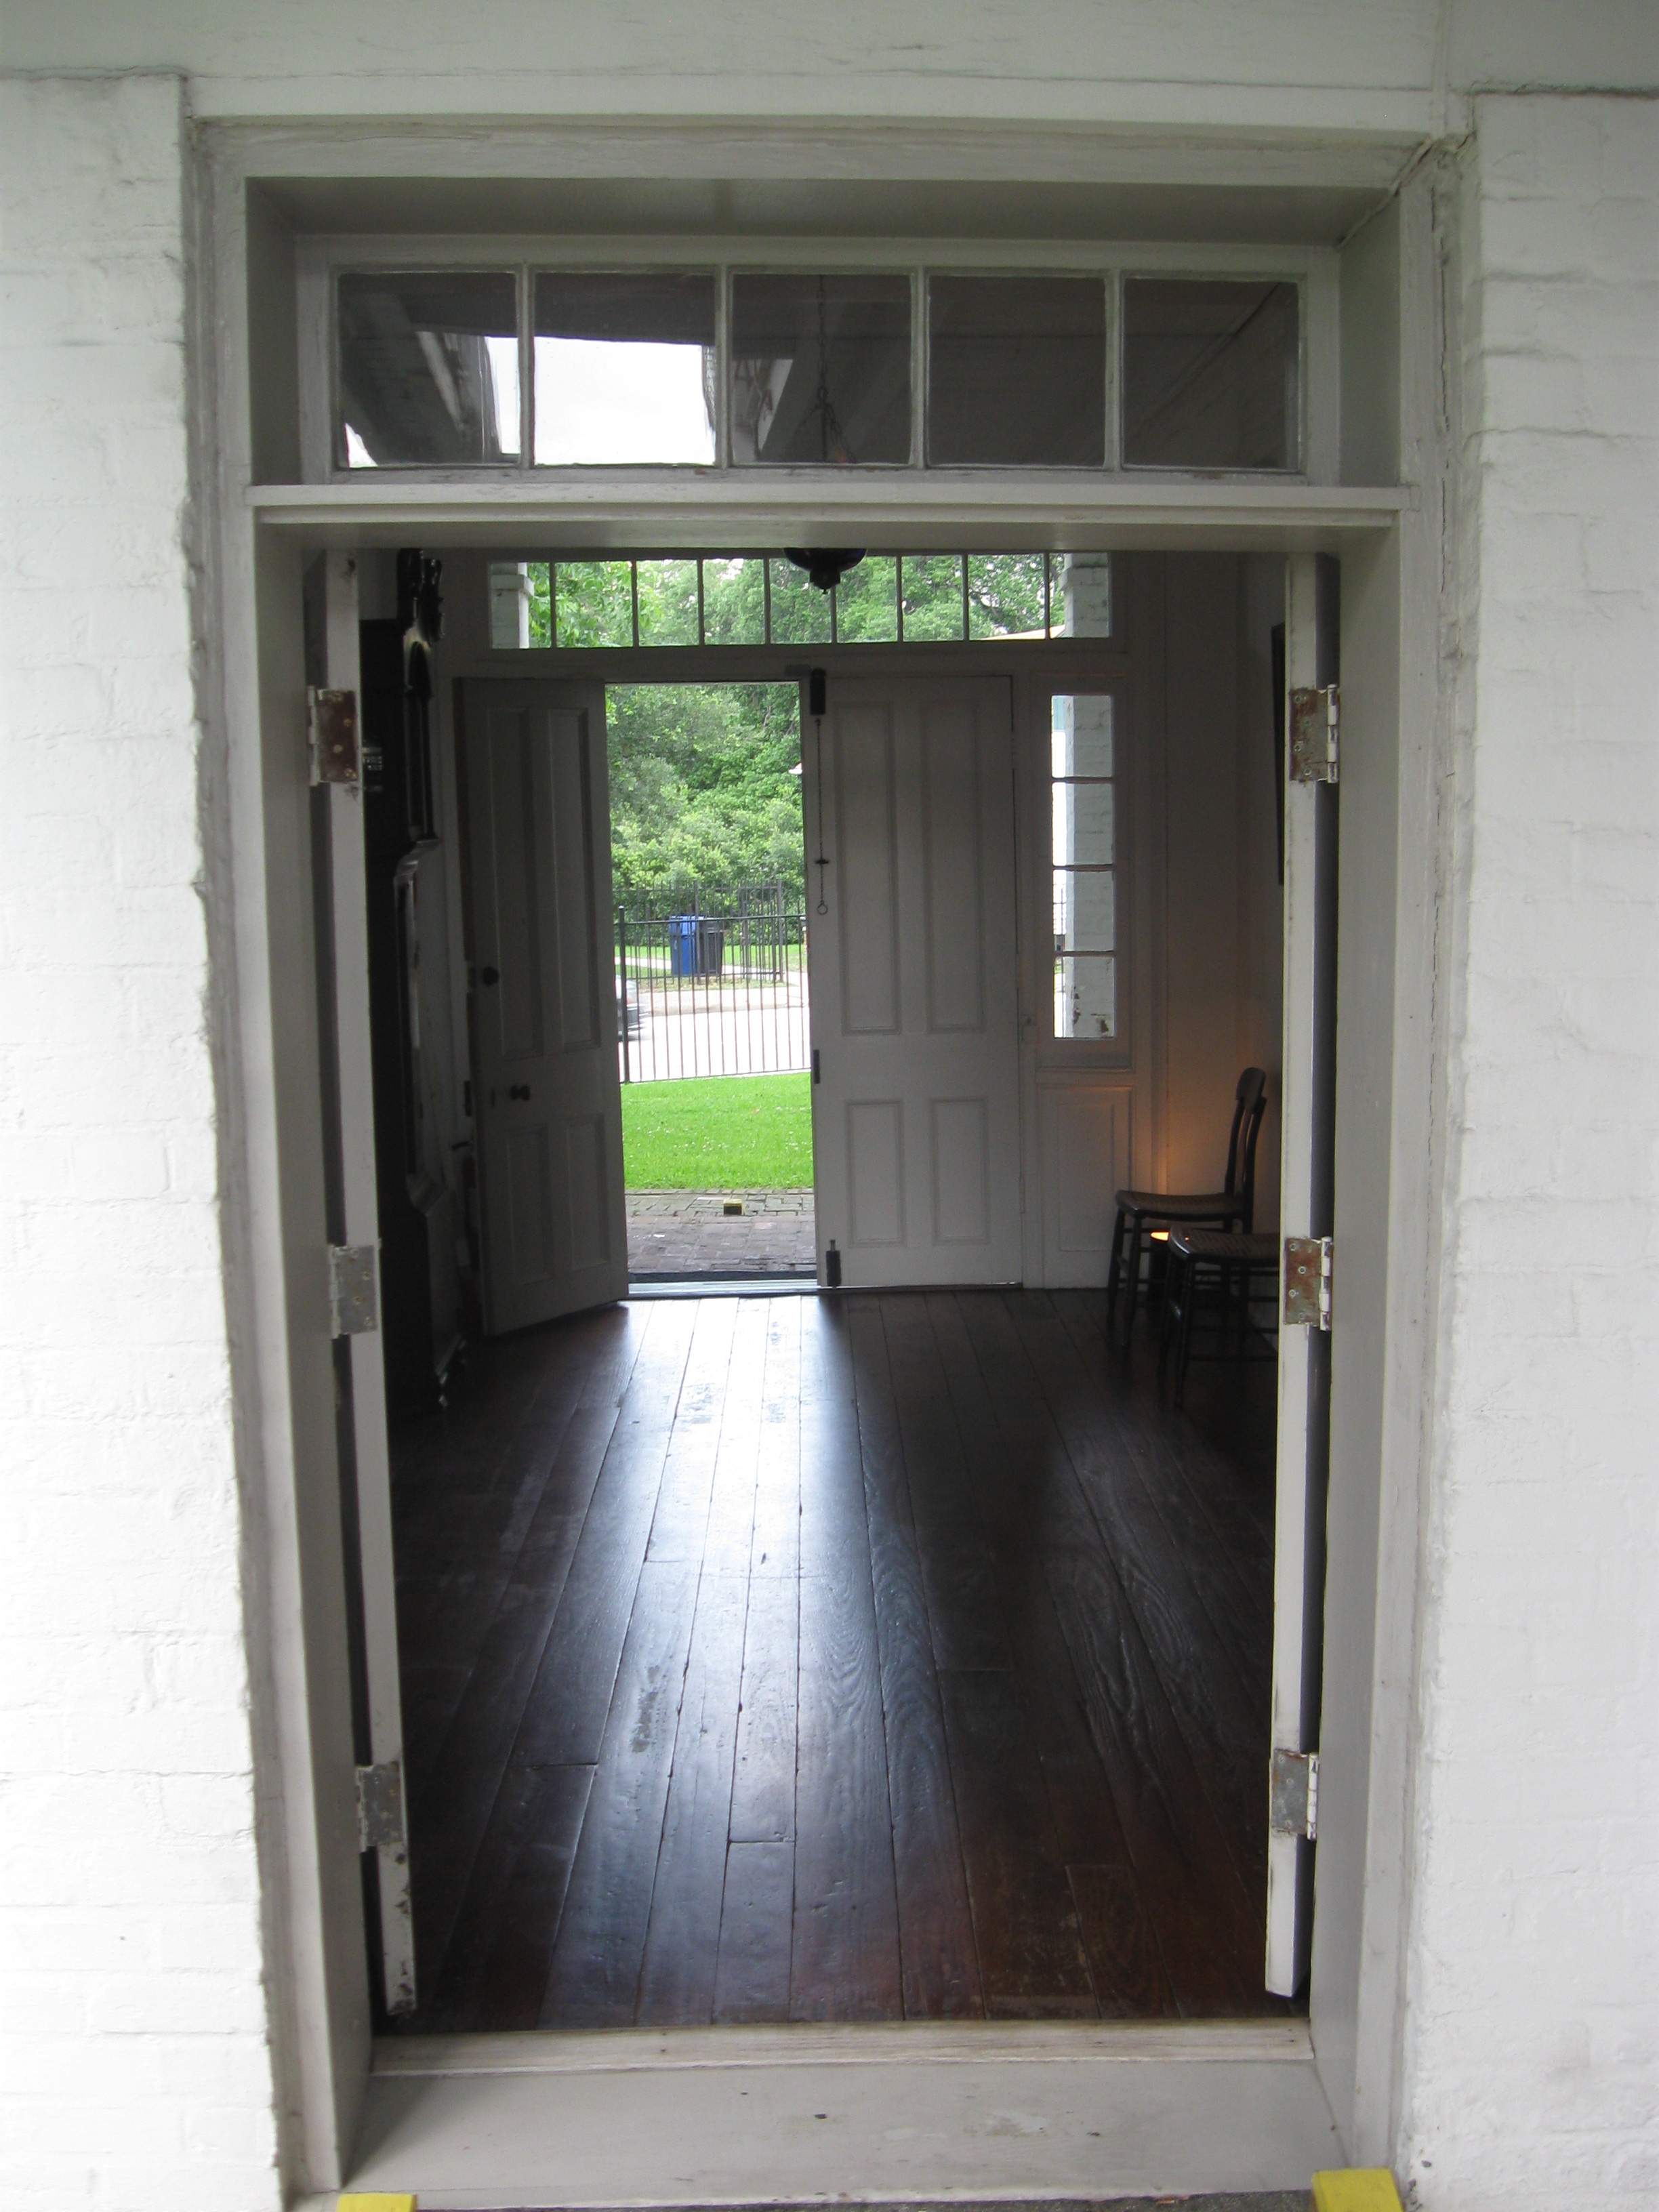 Center hall of the Kellum-Noble House. Doors on either end allowed for cross ventilation.